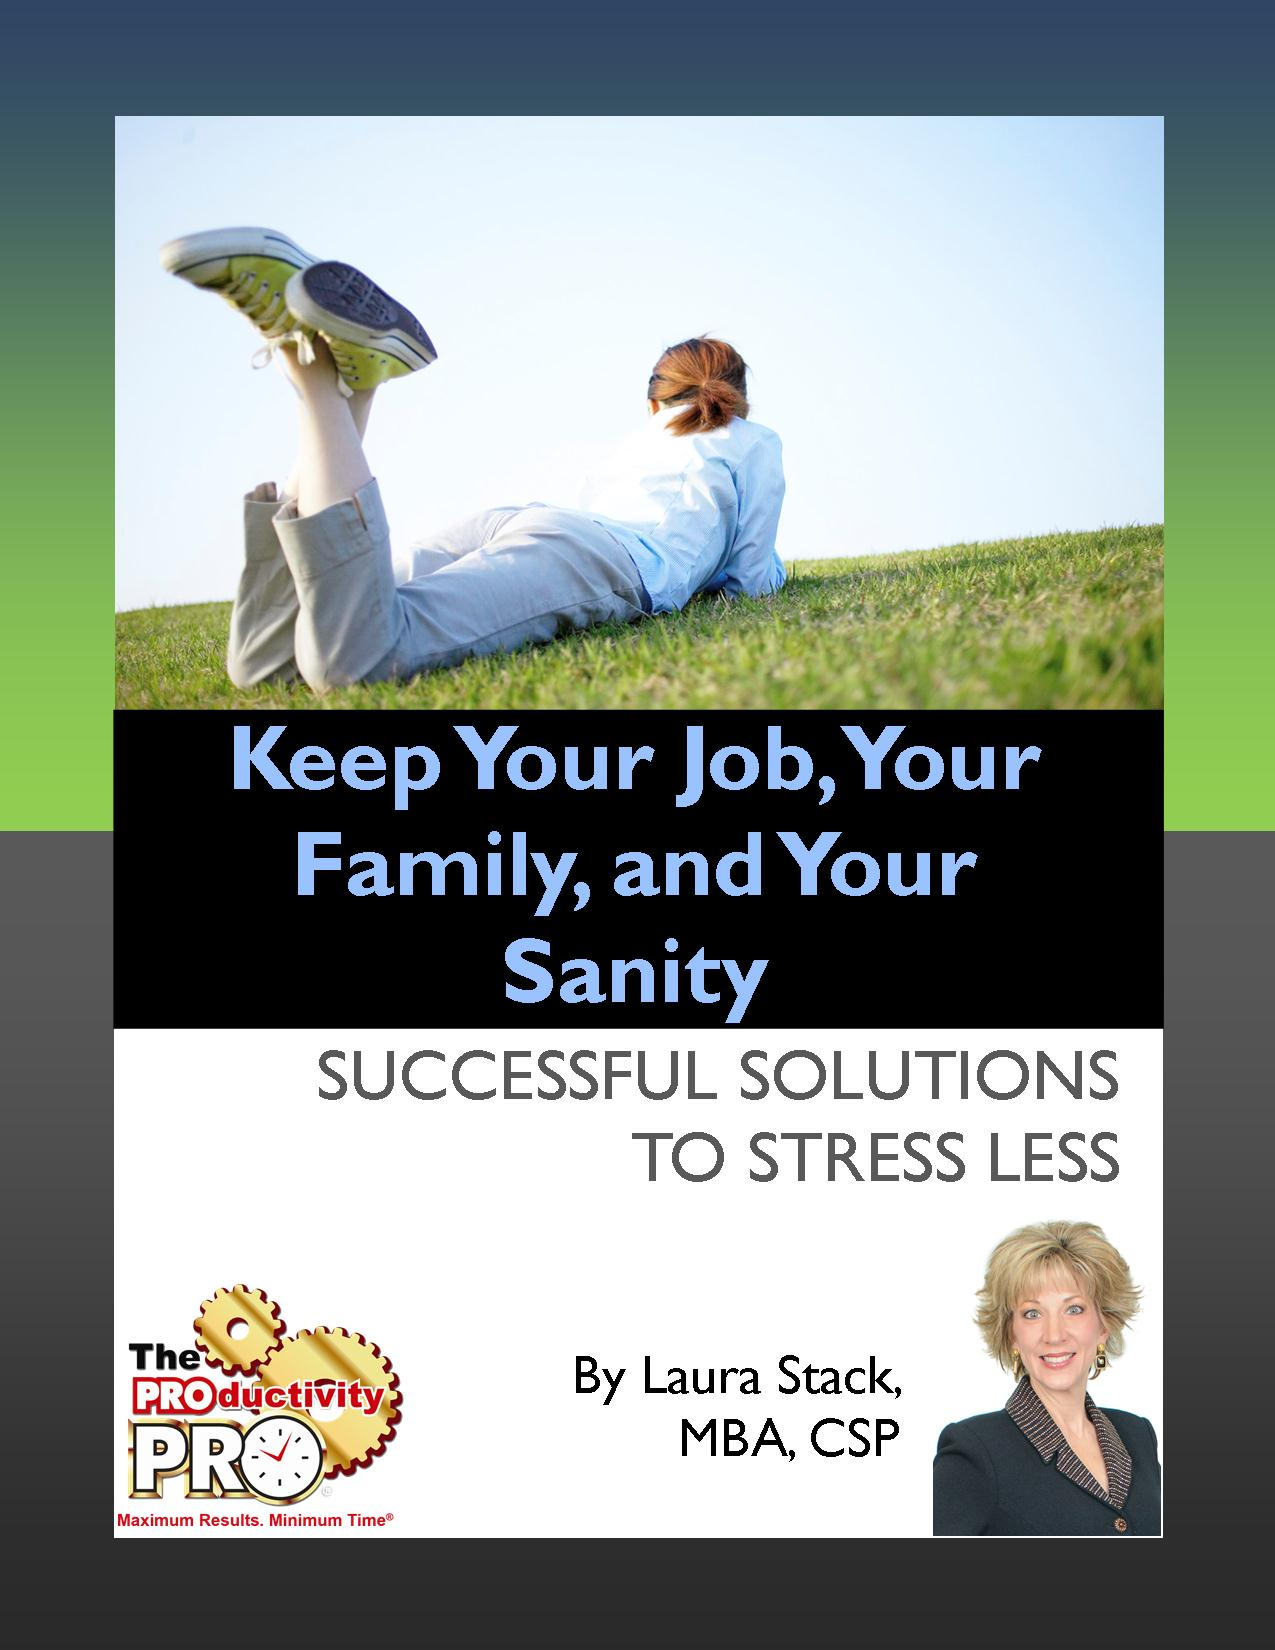 Keep Your Job, Your Family, and Your Sanity